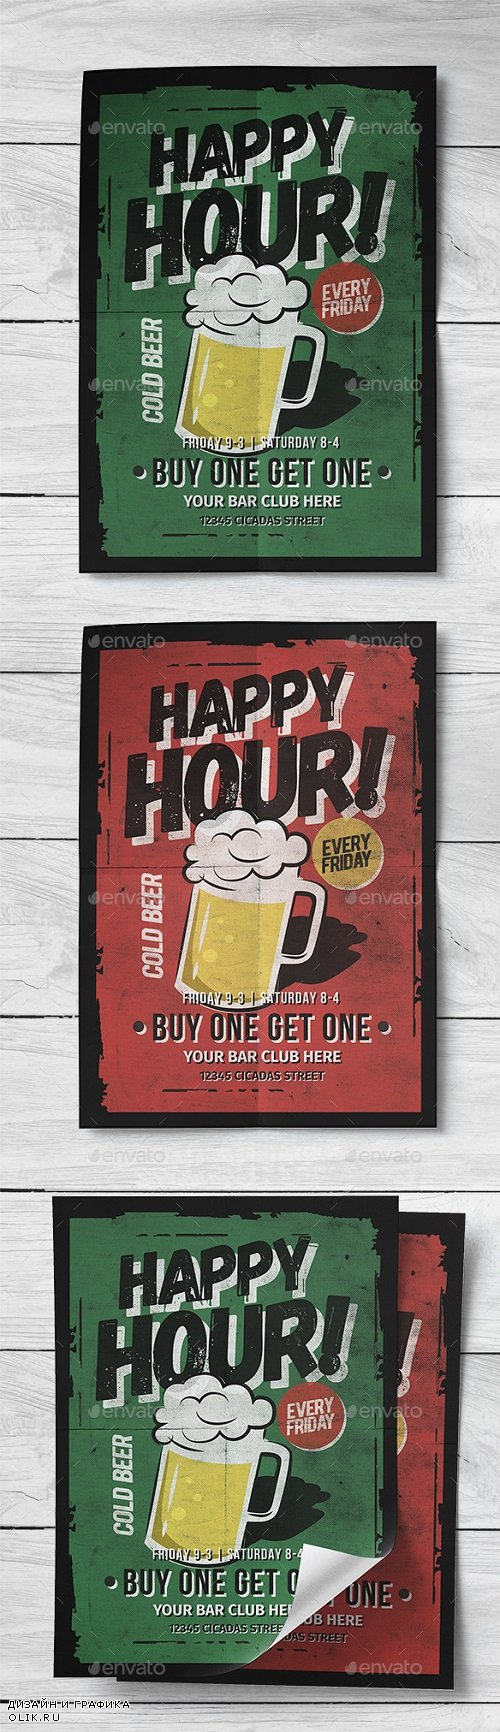 Classic Happy Hour Flyer 20519819